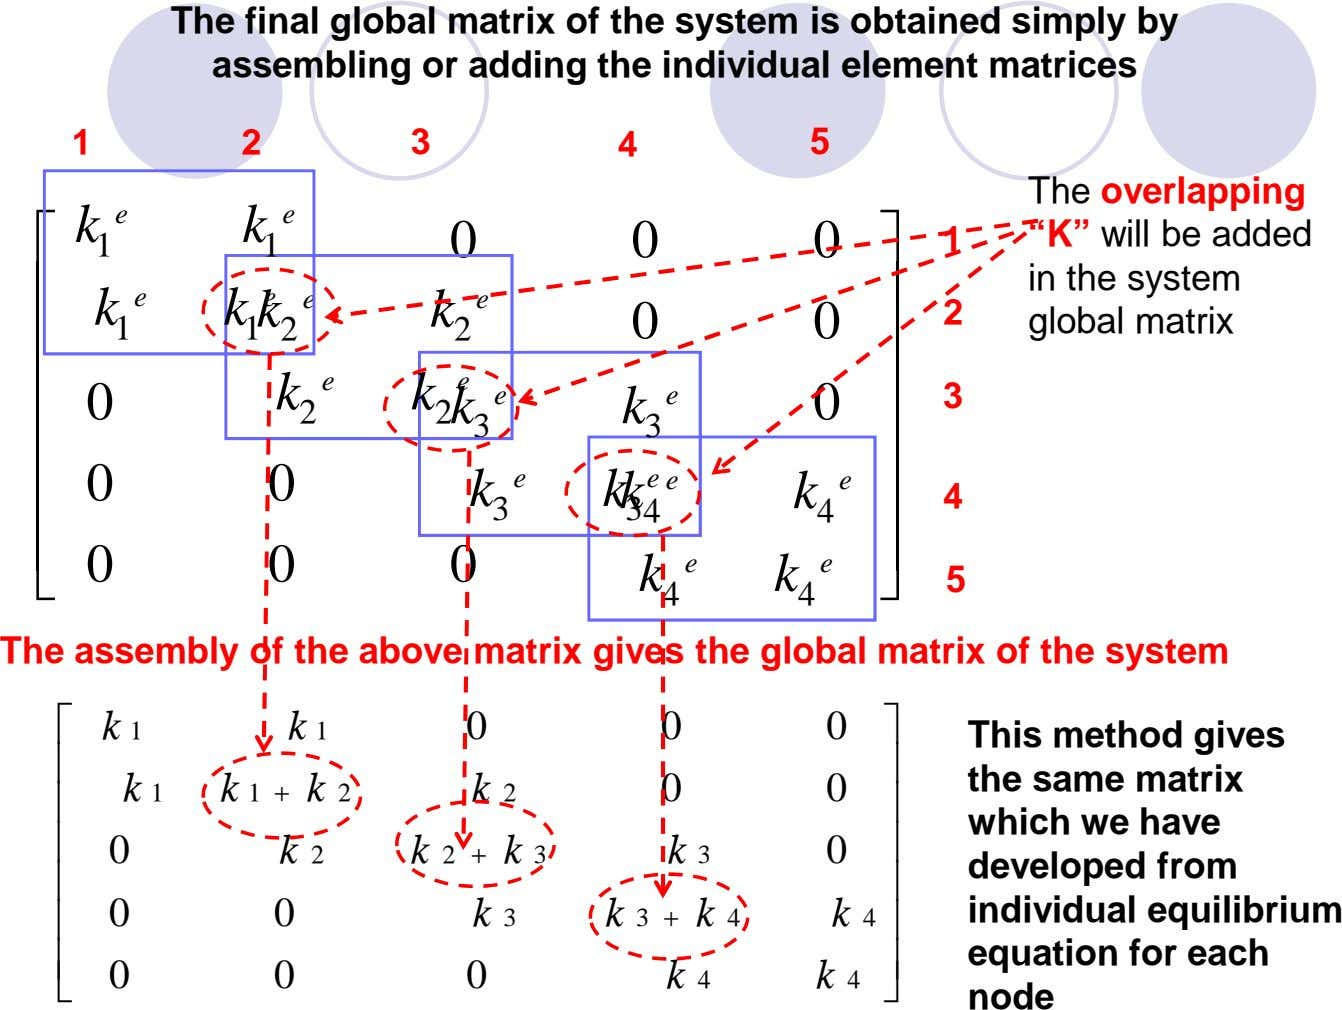 The final global matrix of the system is obtained simply by assembling or adding the